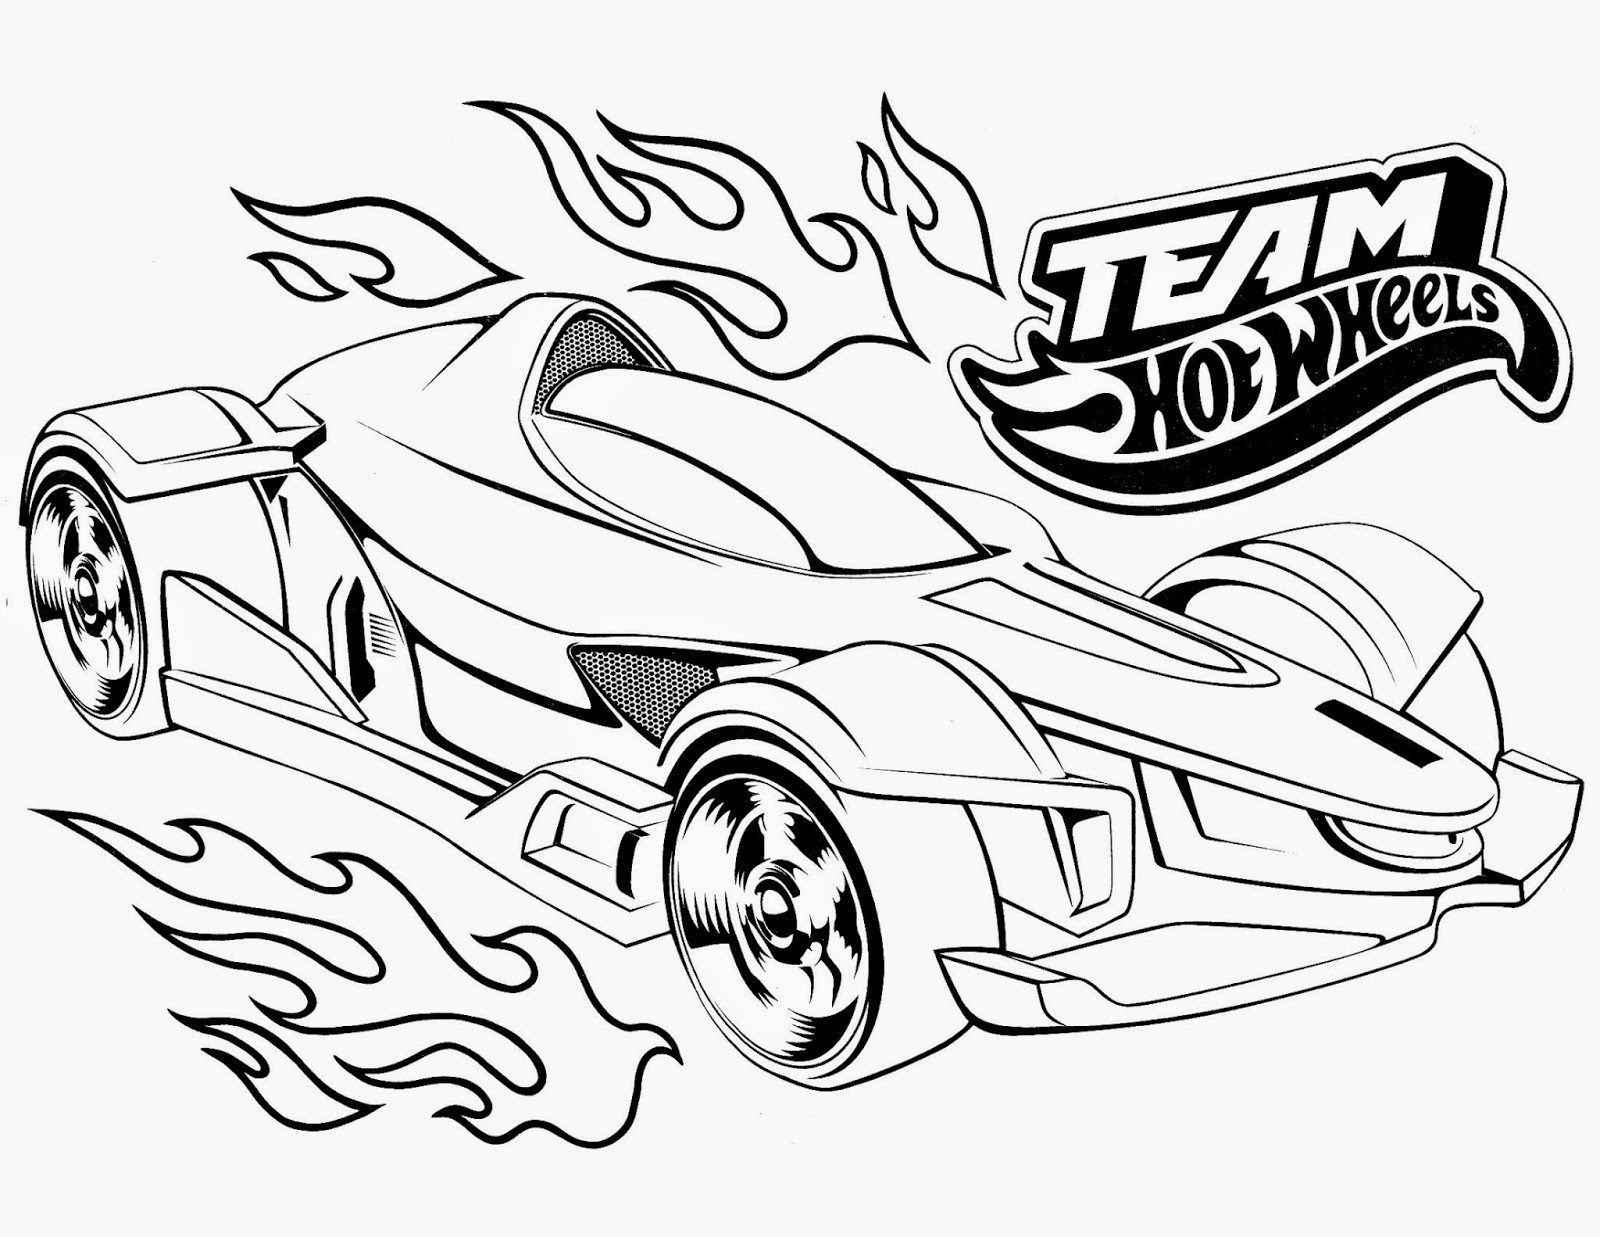 22 Awesome Photo Of Race Car Coloring Pages Davemelillo Com Race Car Coloring Pages Truck Coloring Pages Cars Coloring Pages